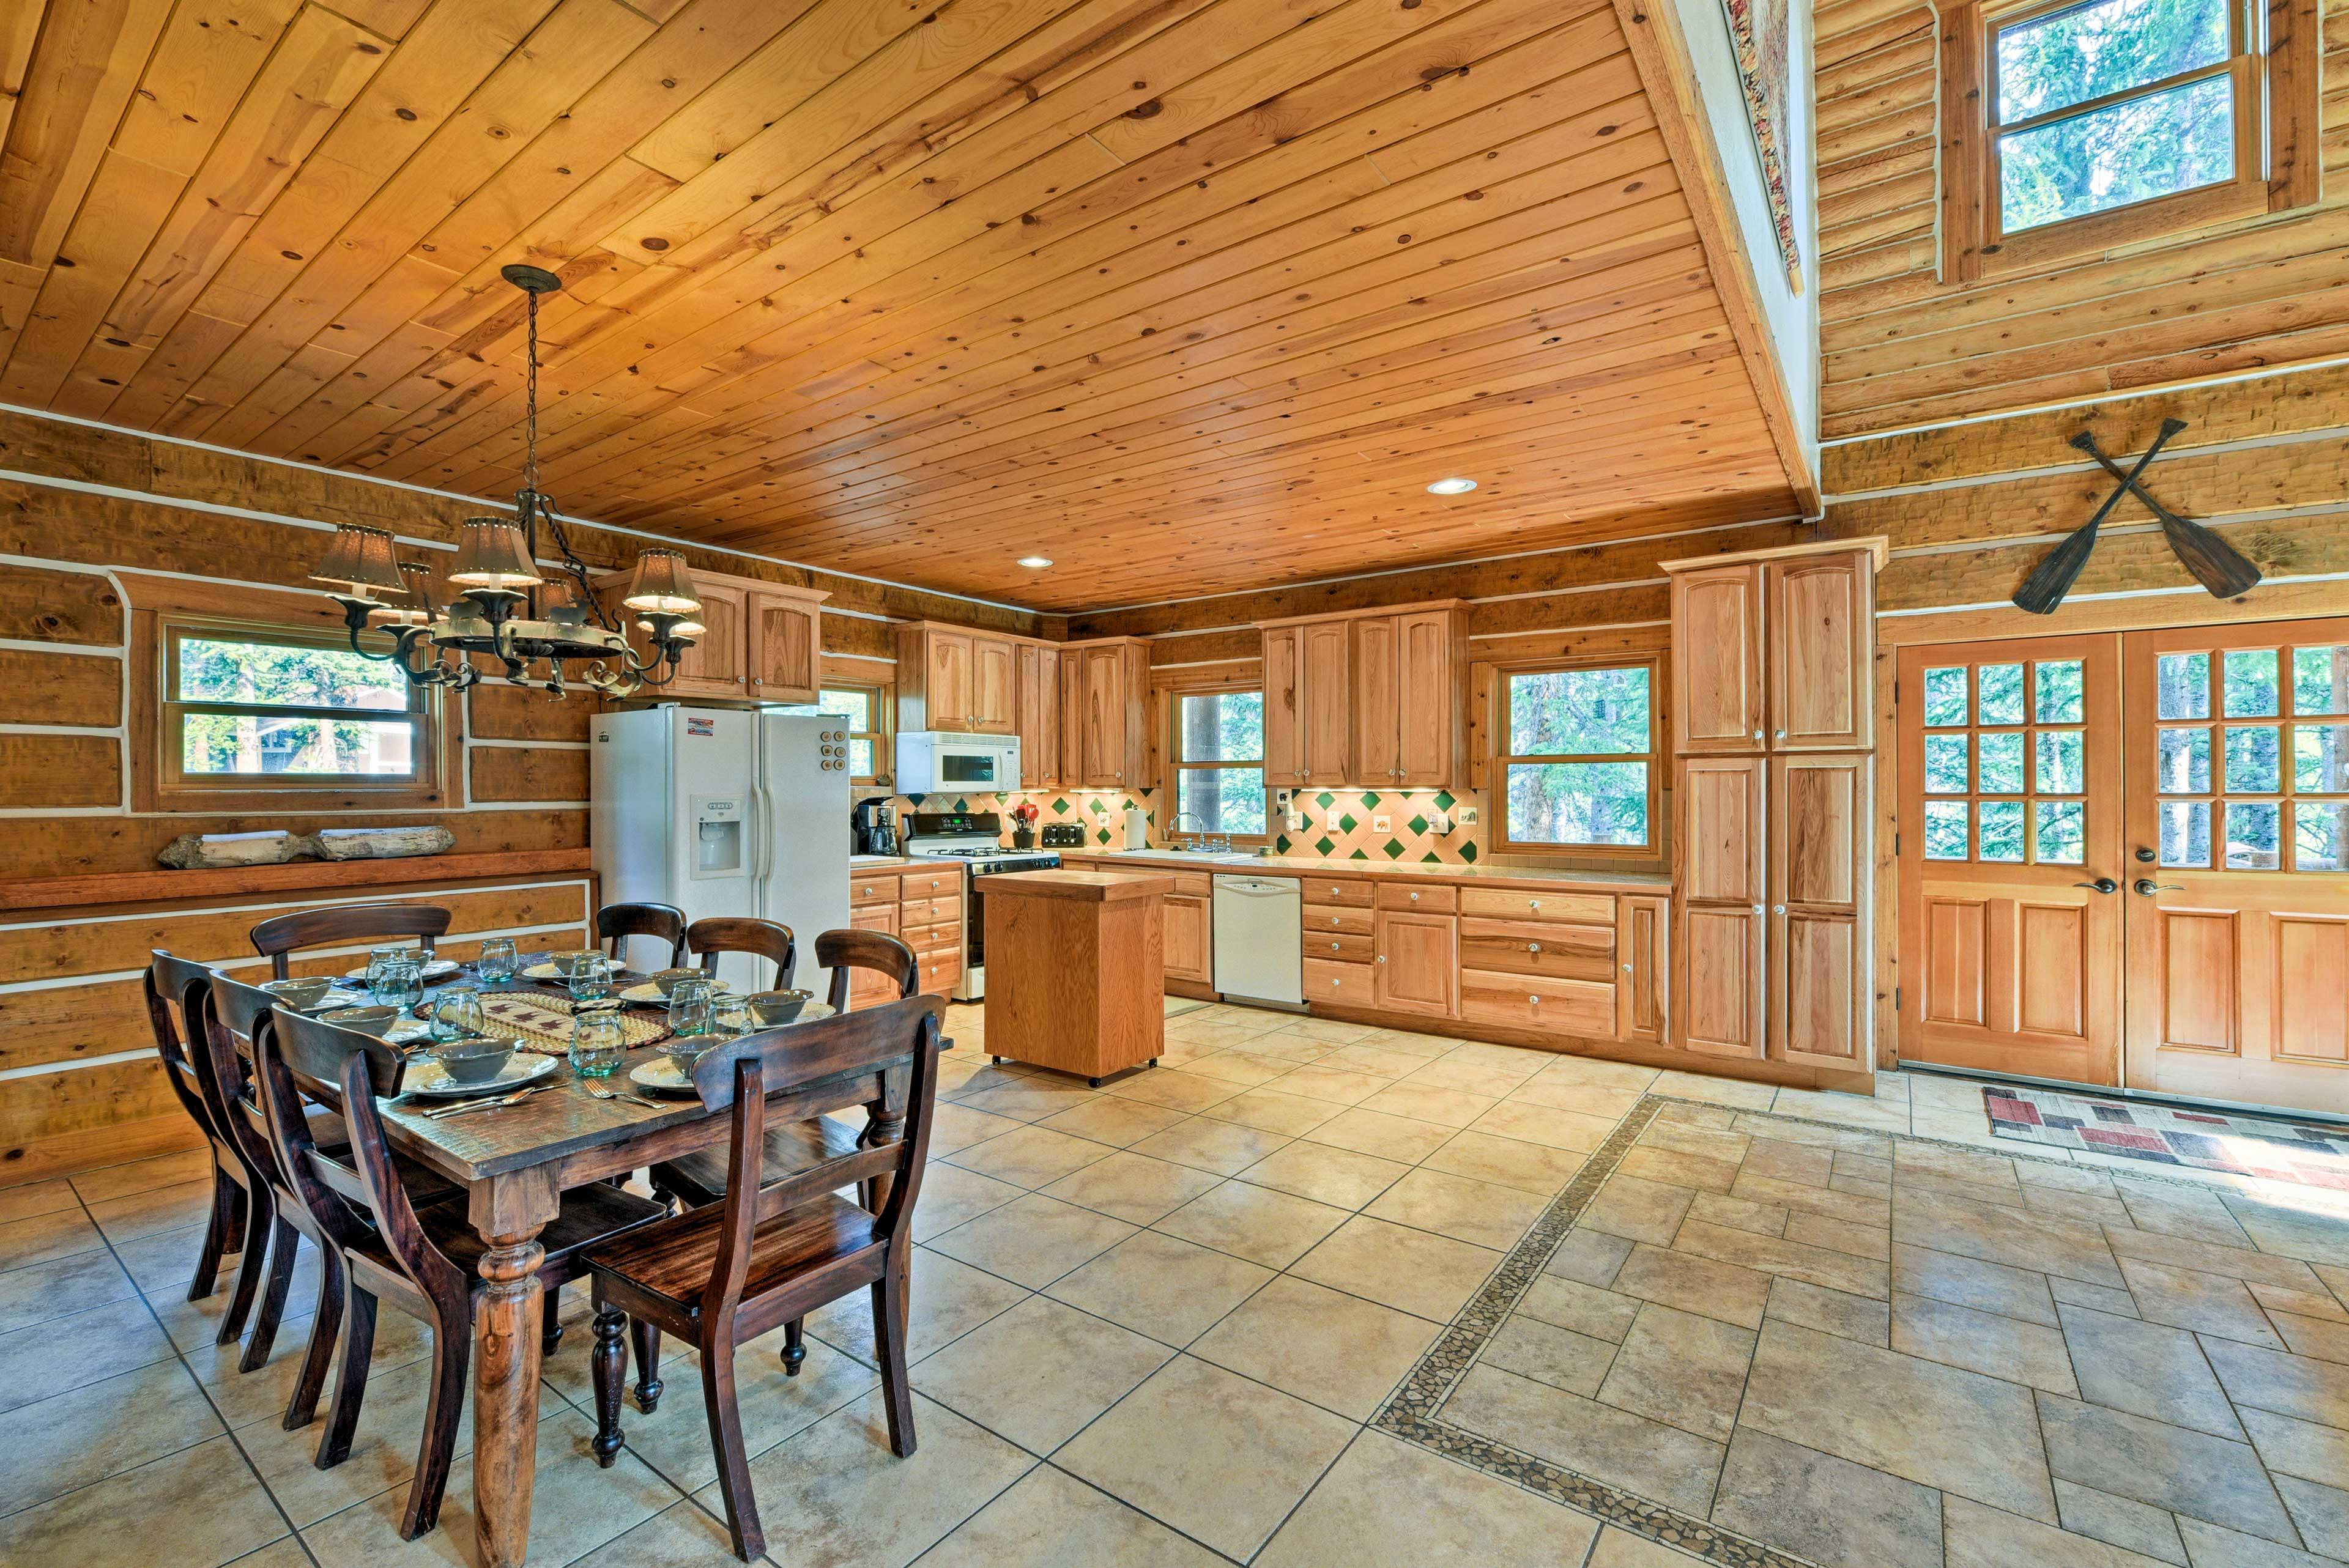 A fully equipped kitchen rests at the opposite end of the main level.